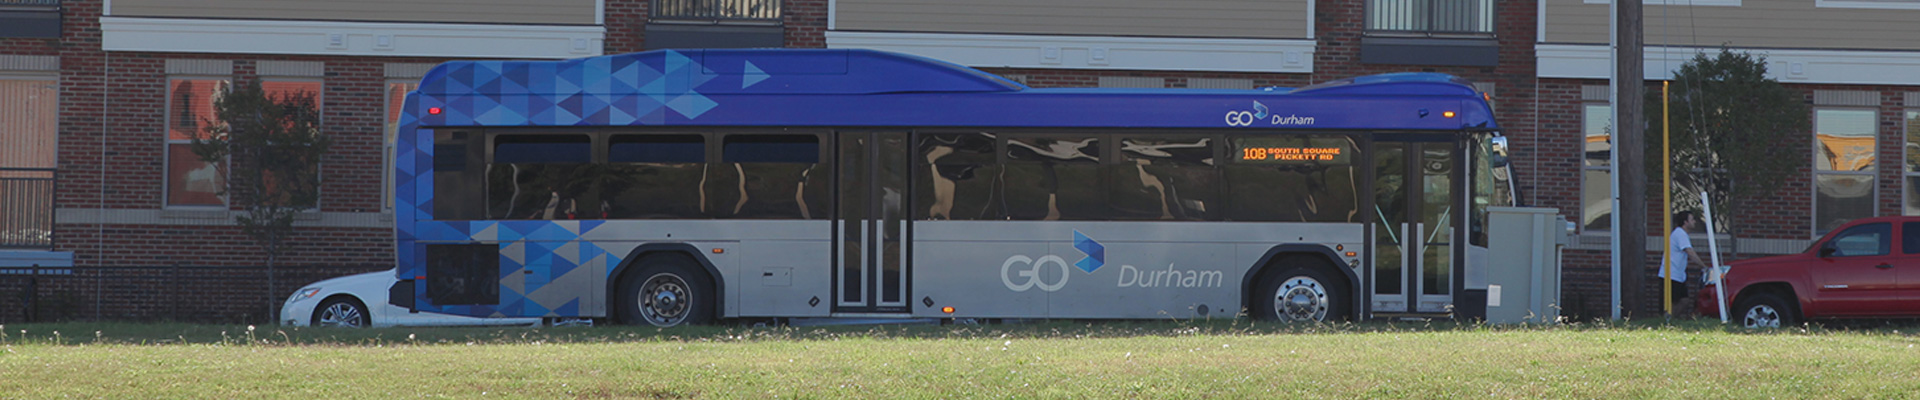 GoDurham Bus driving near Durham Station